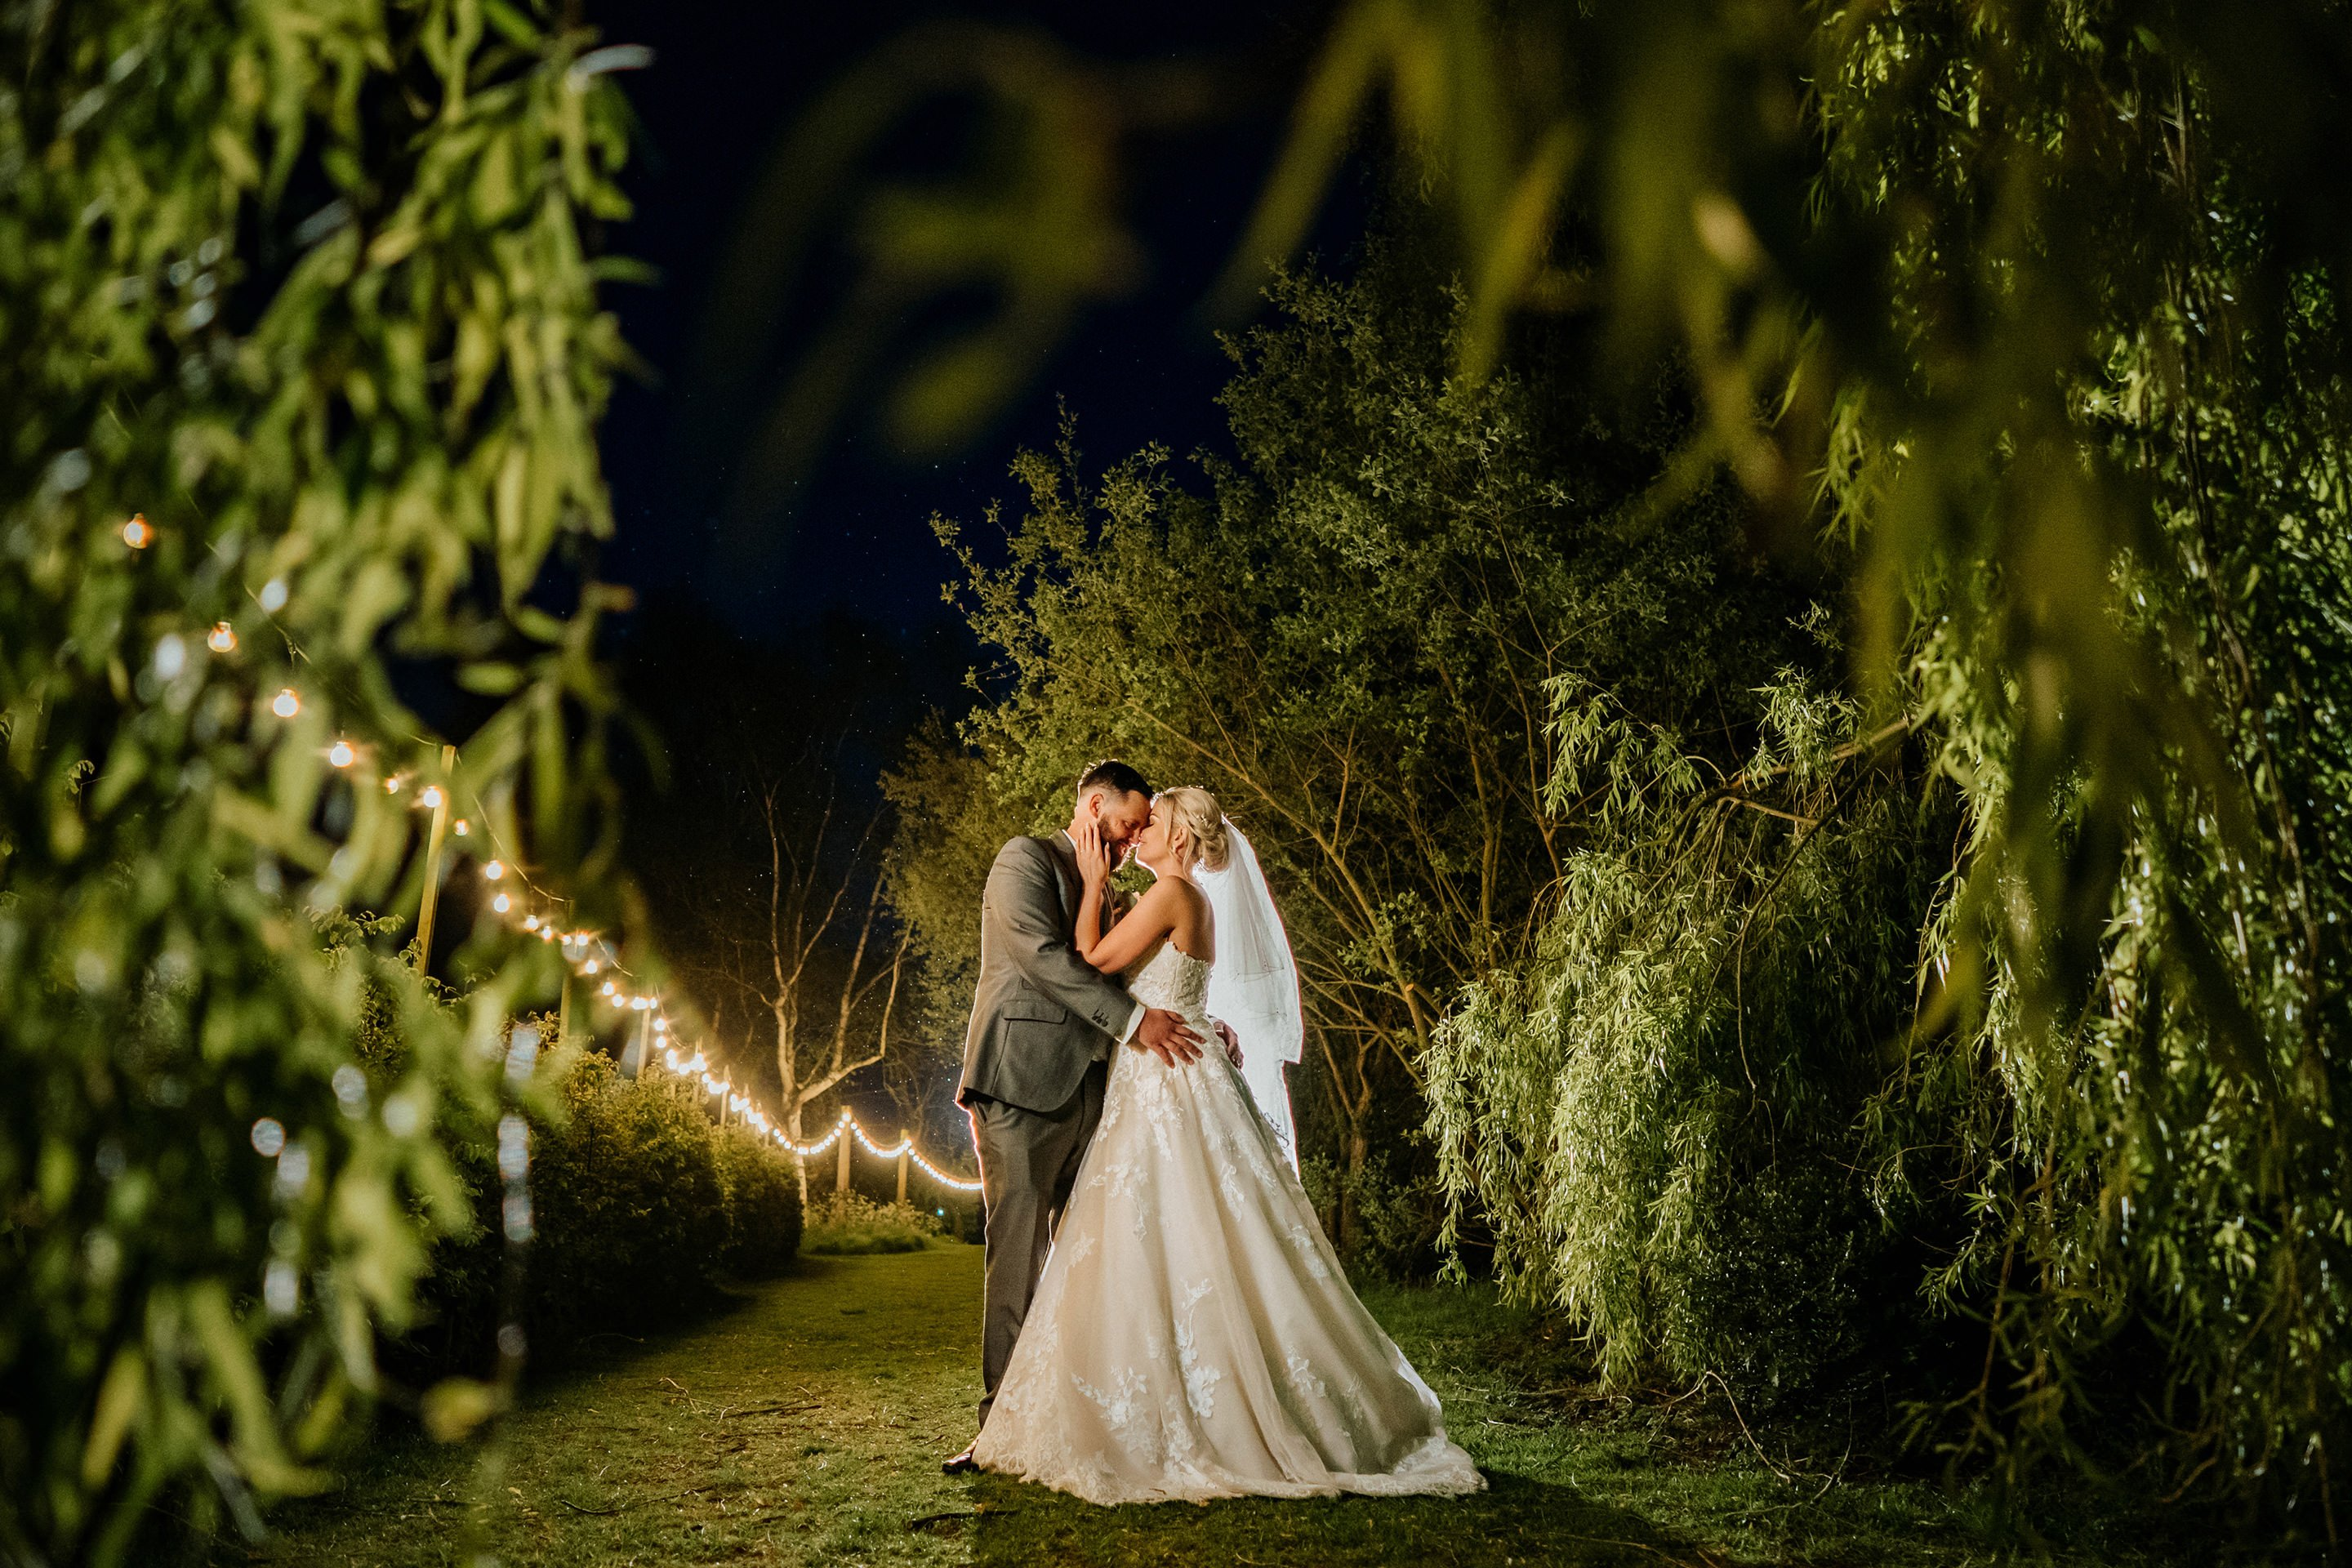 wedding photography at Anne of Clever barn great lodge0001